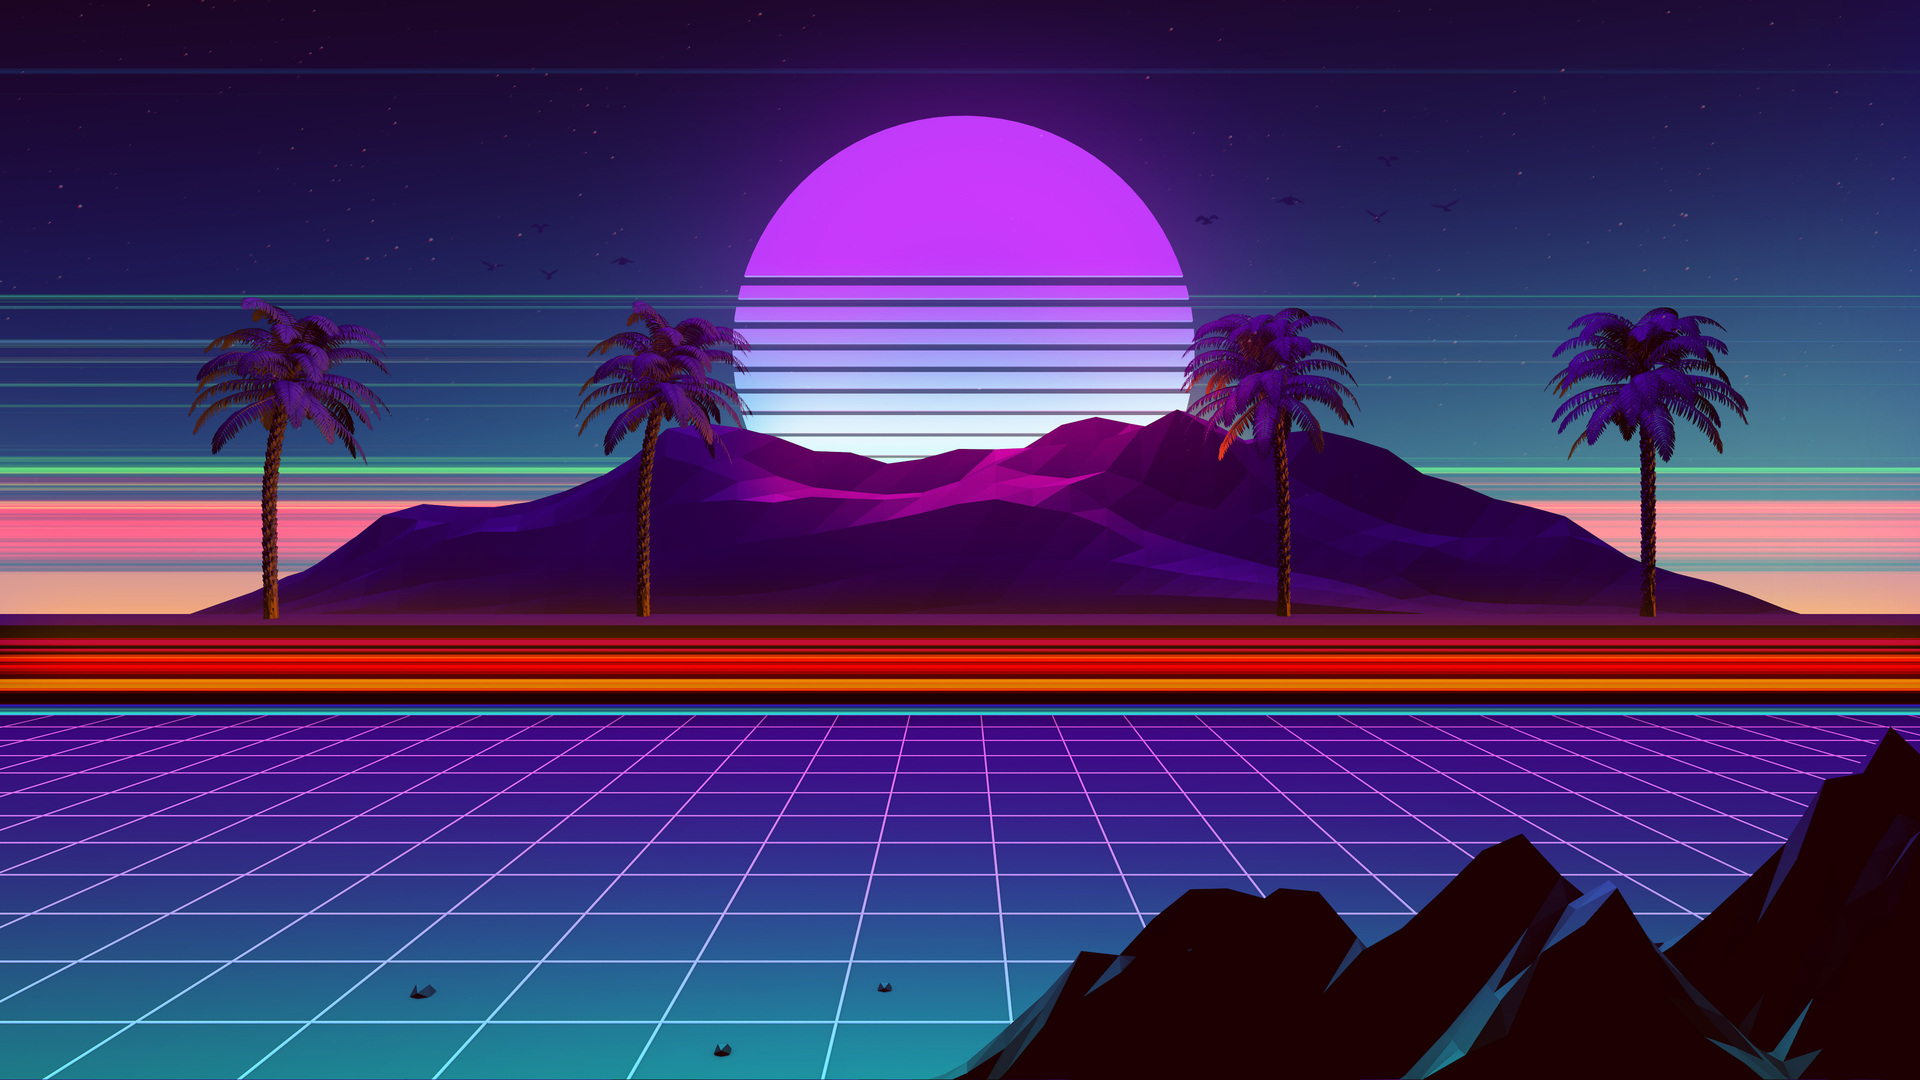 1920x1080 Retro Wave 4k Laptop Full Hd 1080p Hd 4k Wallpapers Images Backgrounds Photos And Pictures